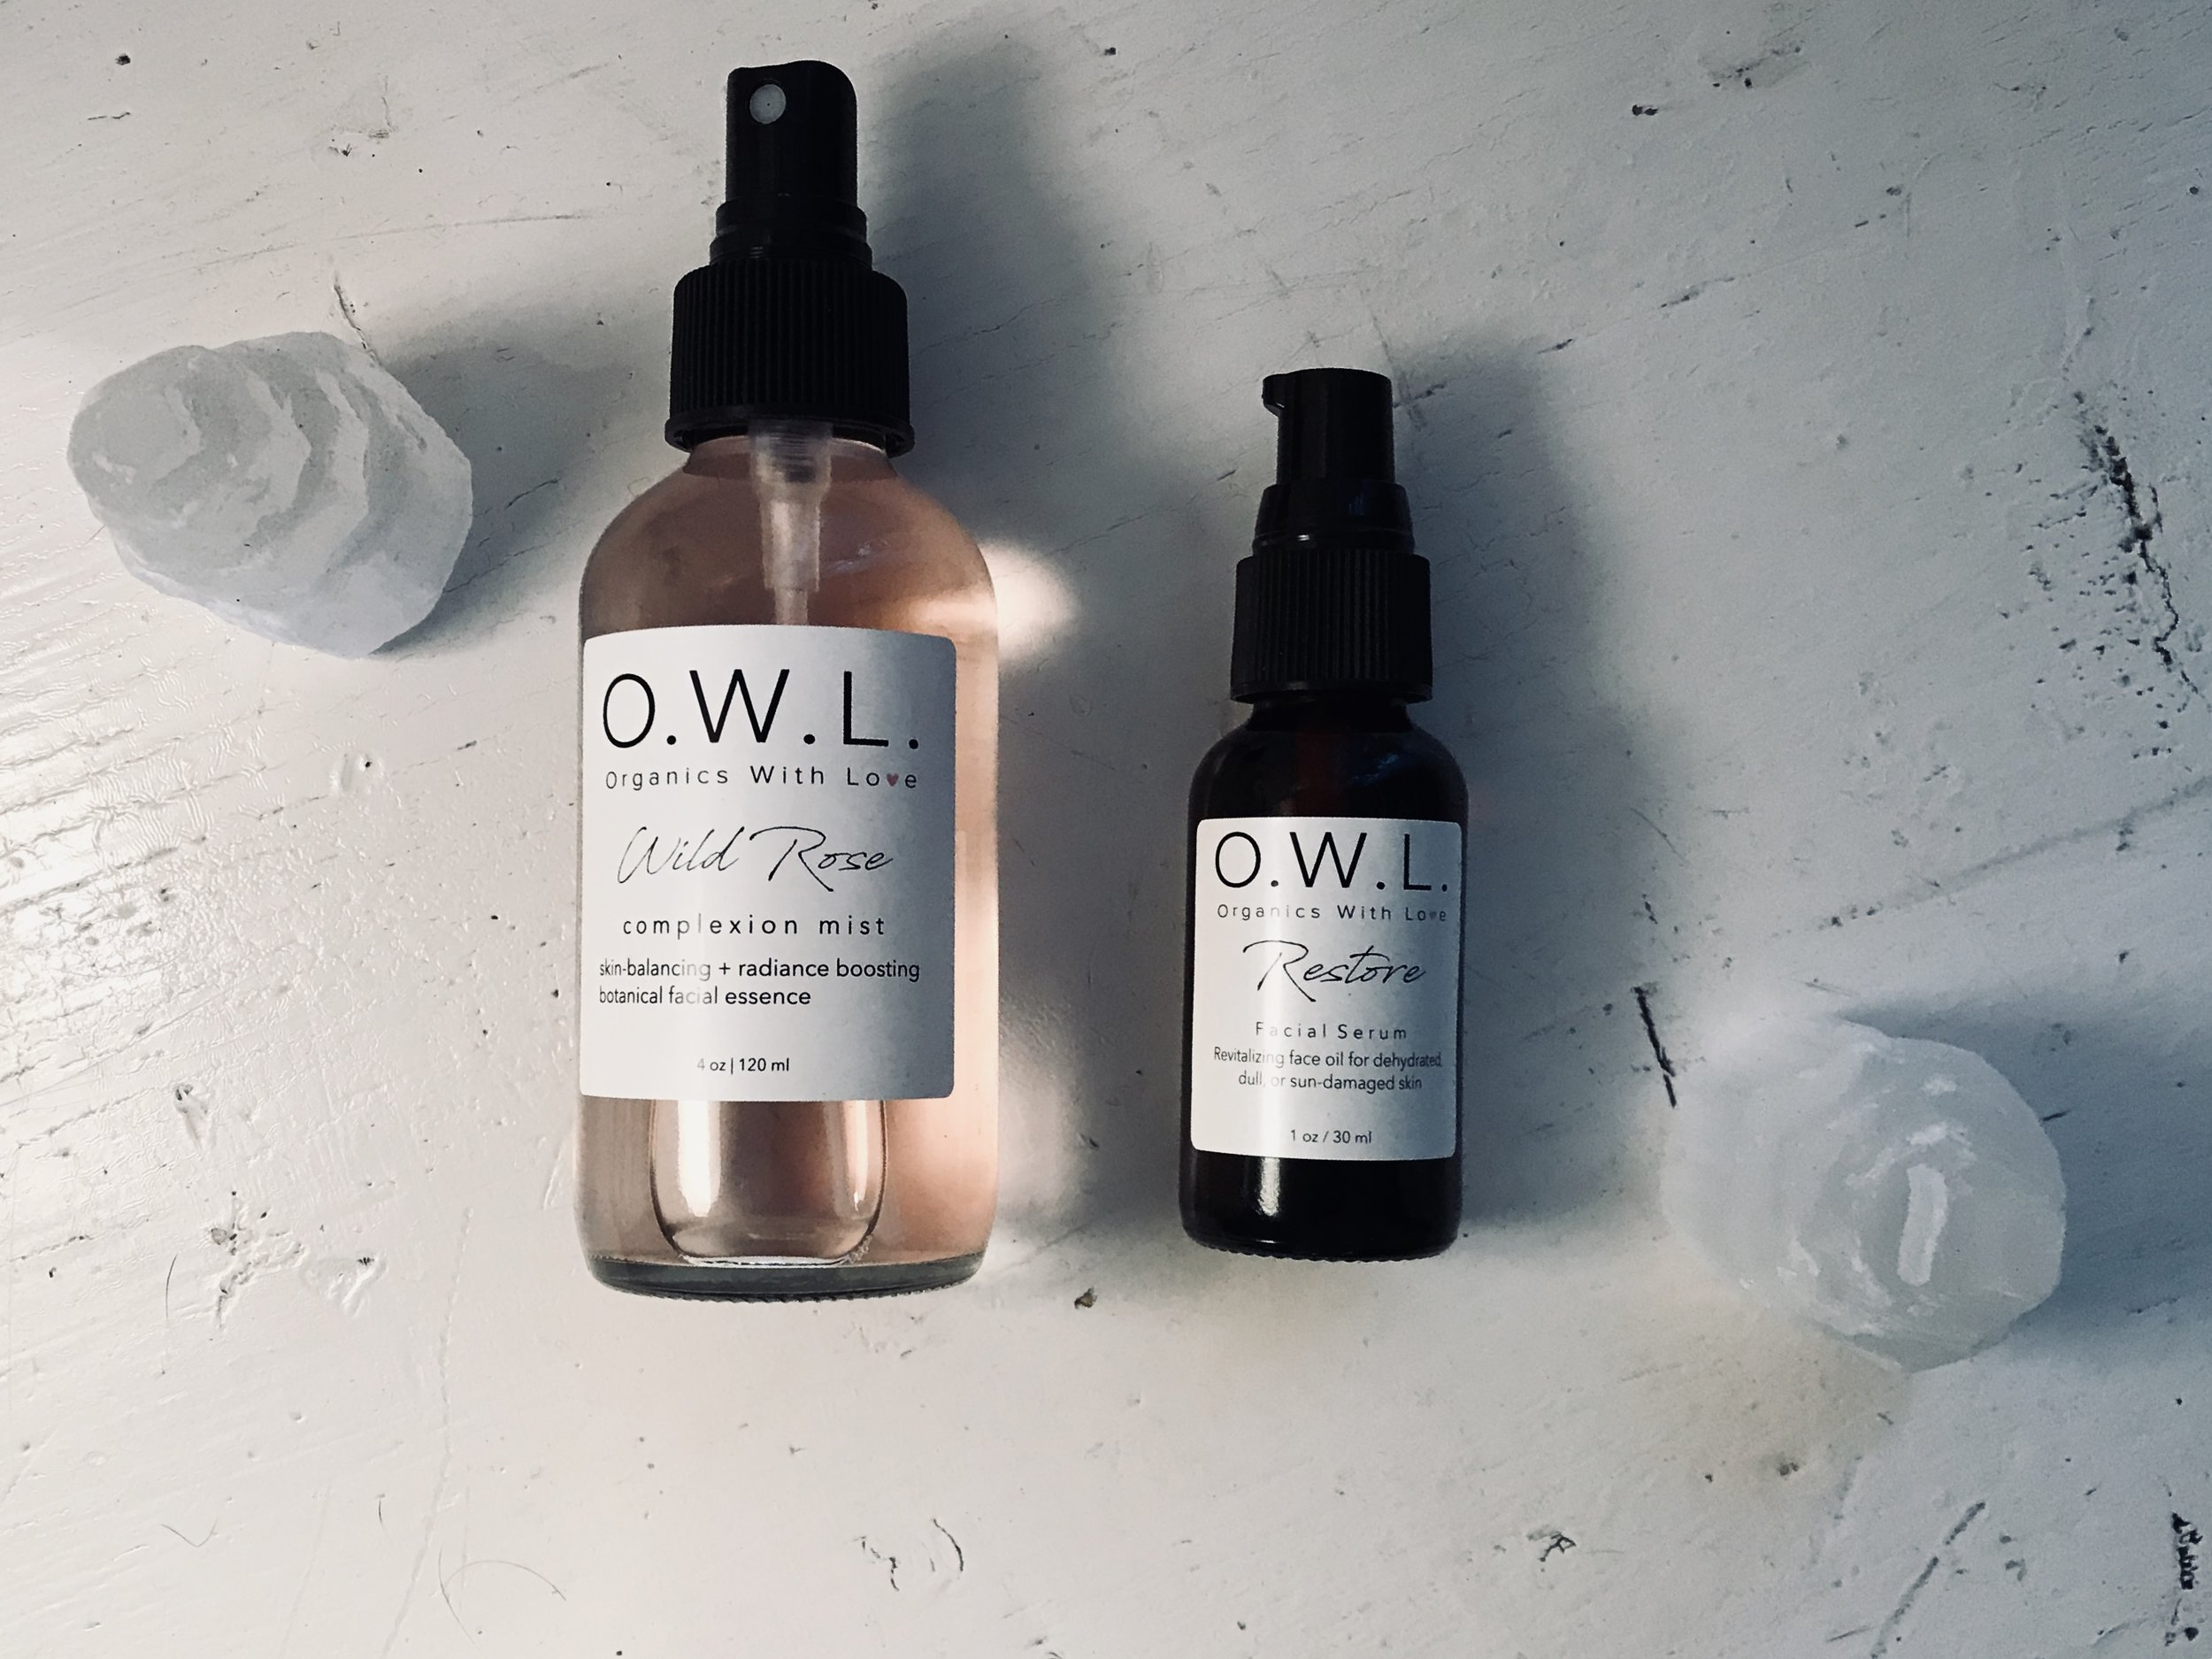 our recommendations: - Element Cleansing Oil + Purity Cleansing Water + Wild Rose Complexion Mist + Restore Age-Defying Serum.While our entire collection works synergistically with the skin to bring you the best results, this trio will enhance your natural glow and encourage your daily self-care practice.